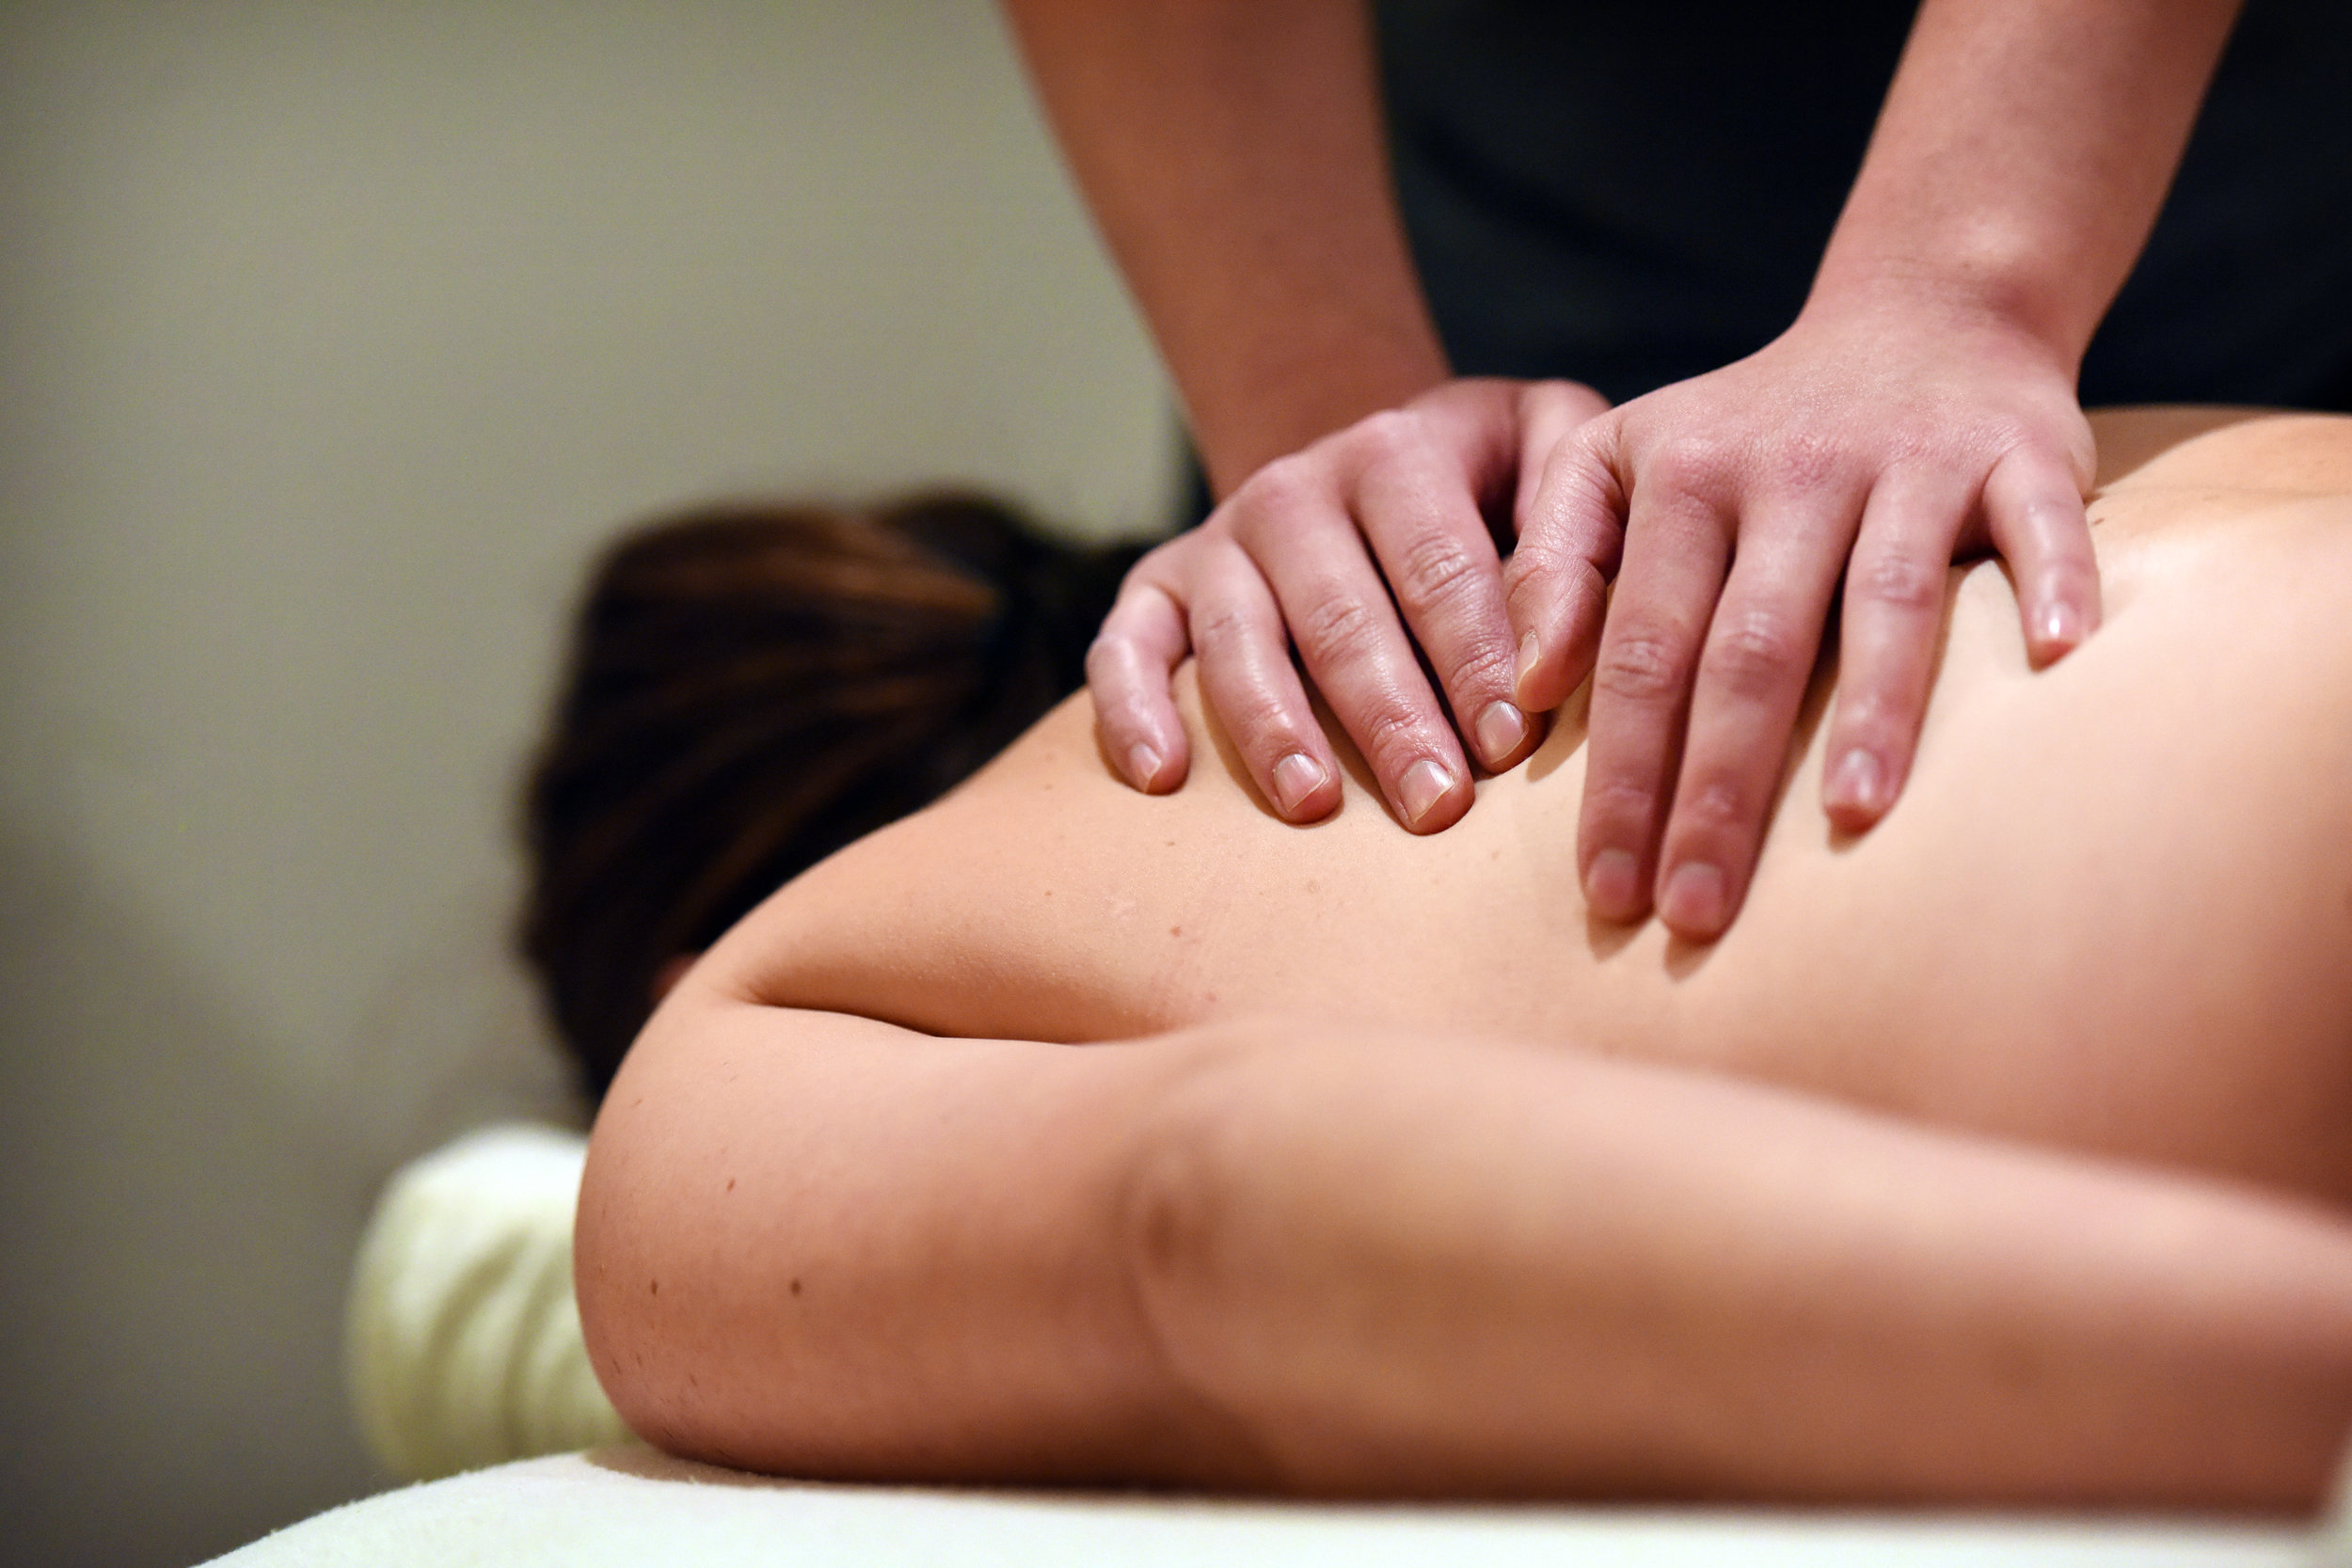 Massage Therapy - Reduce stress, pain and tension and enjoy the things you love with an hour or two devoted entirely to you.